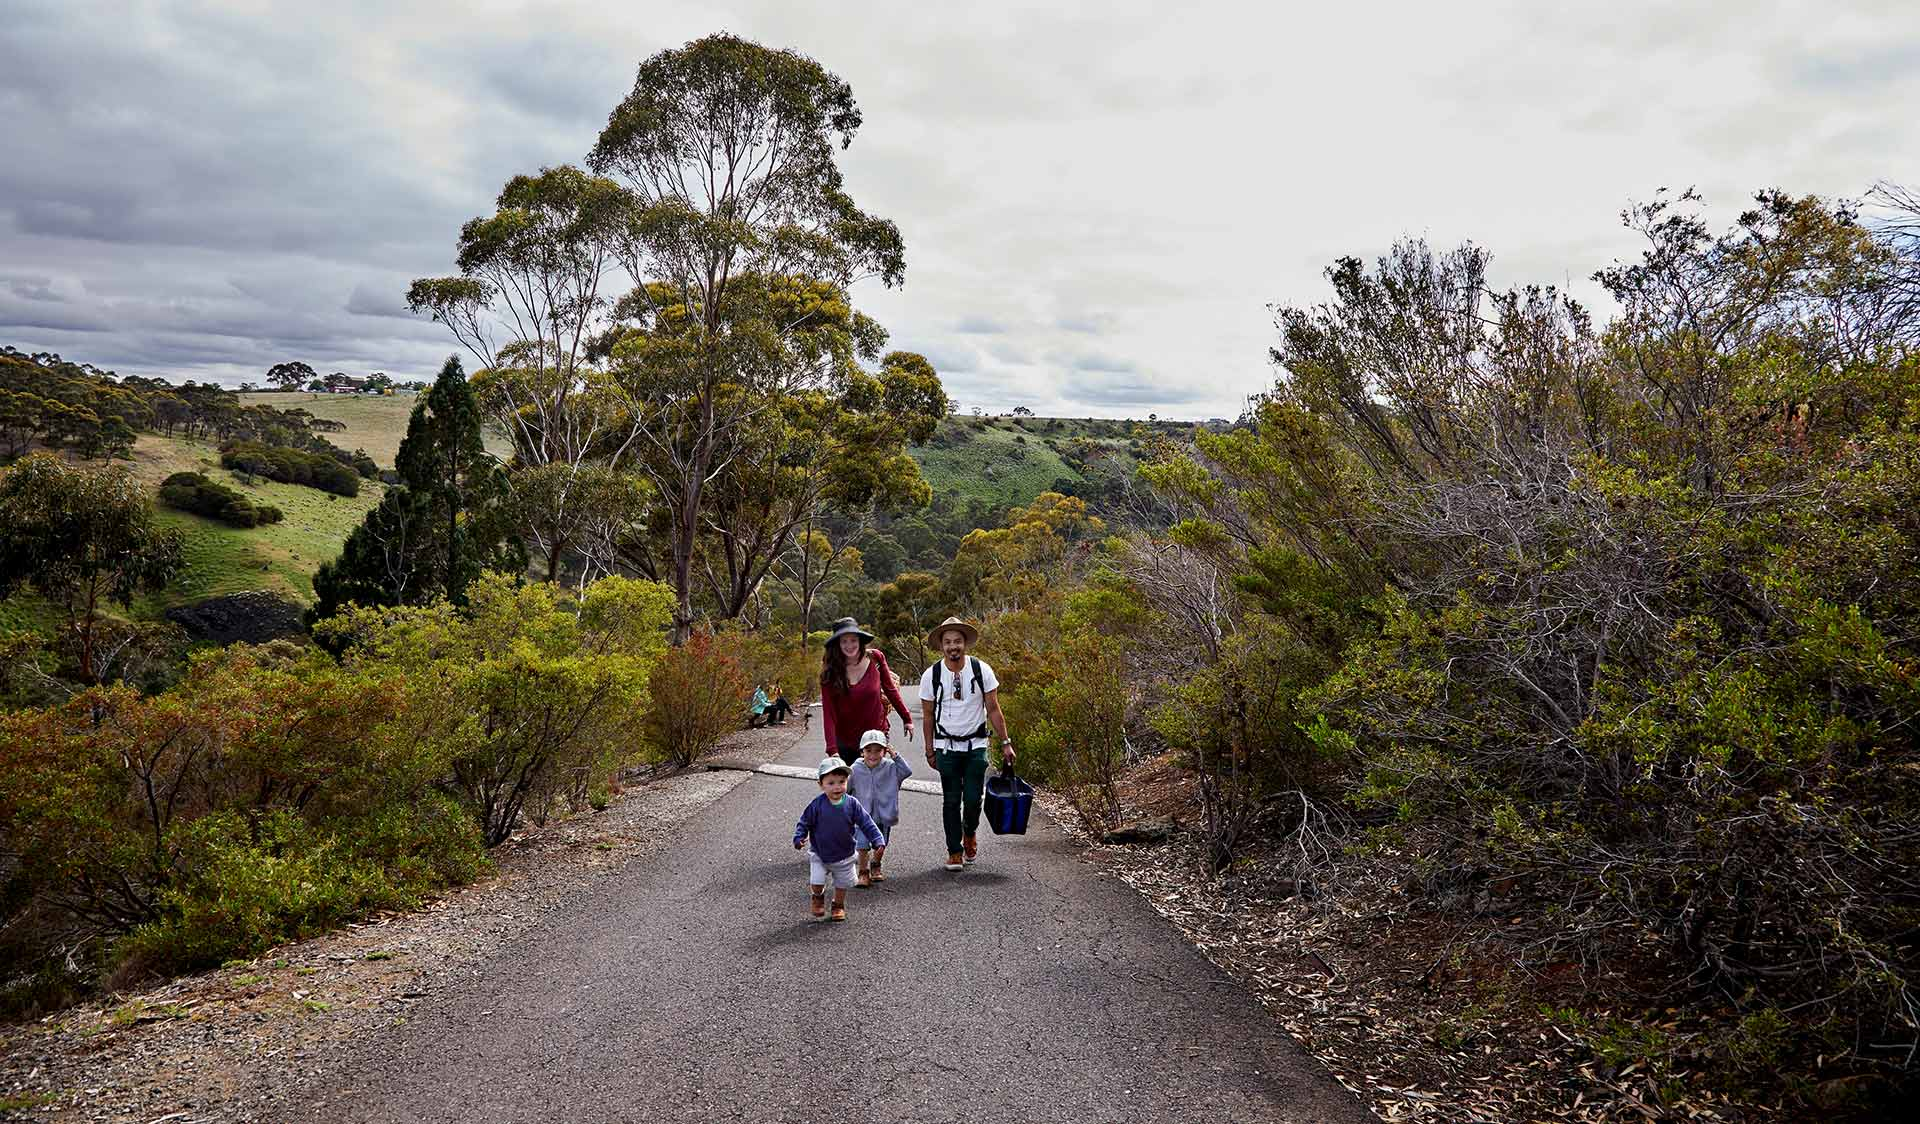 A family walk through the Organ Pipes National Park on the way to a picnic spot.